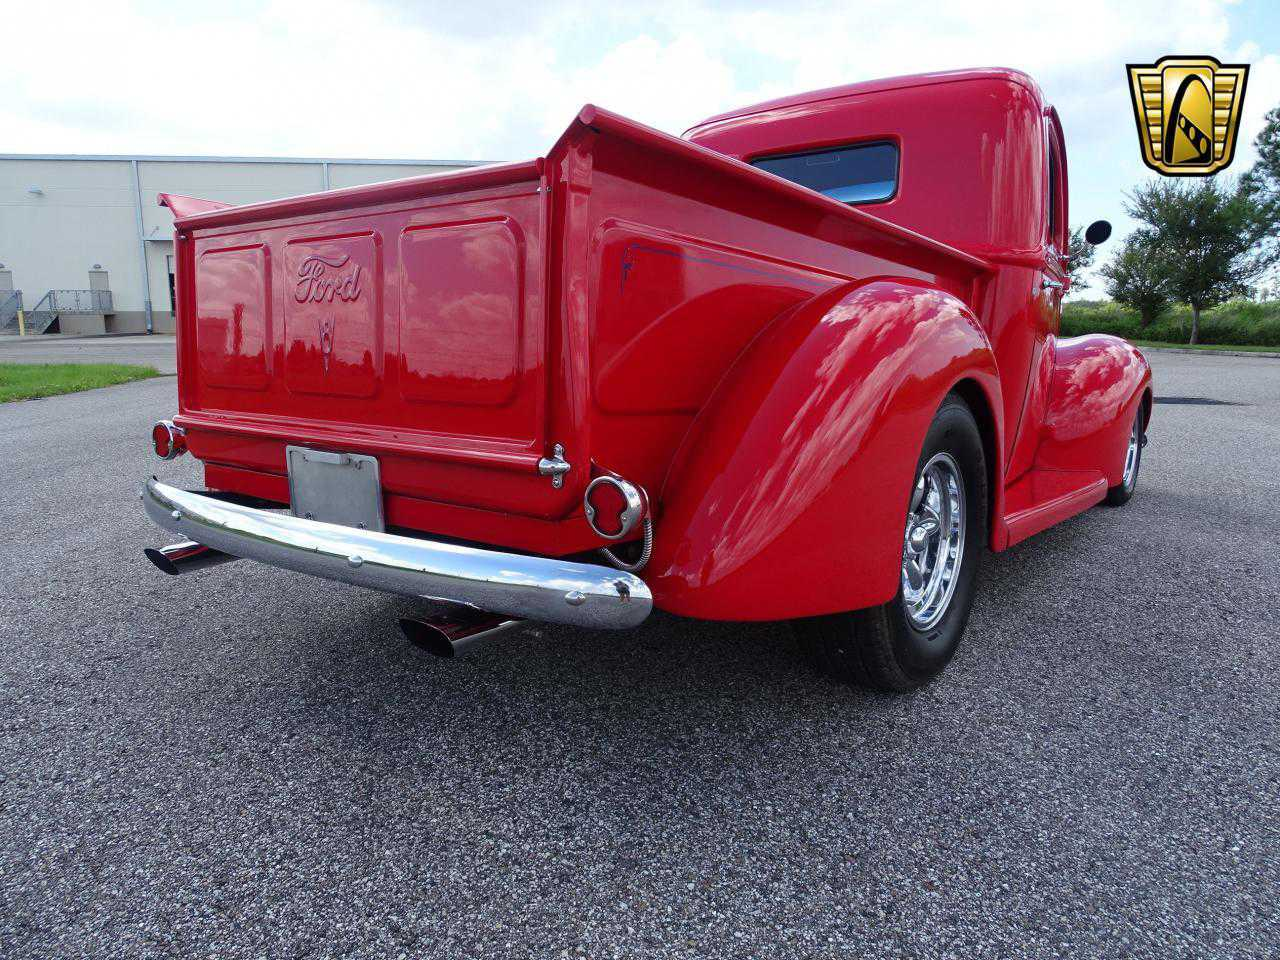 1941 Ford Pickup For Sale In Ruskin Fl Gcctpa1318 Coupe Red Prev